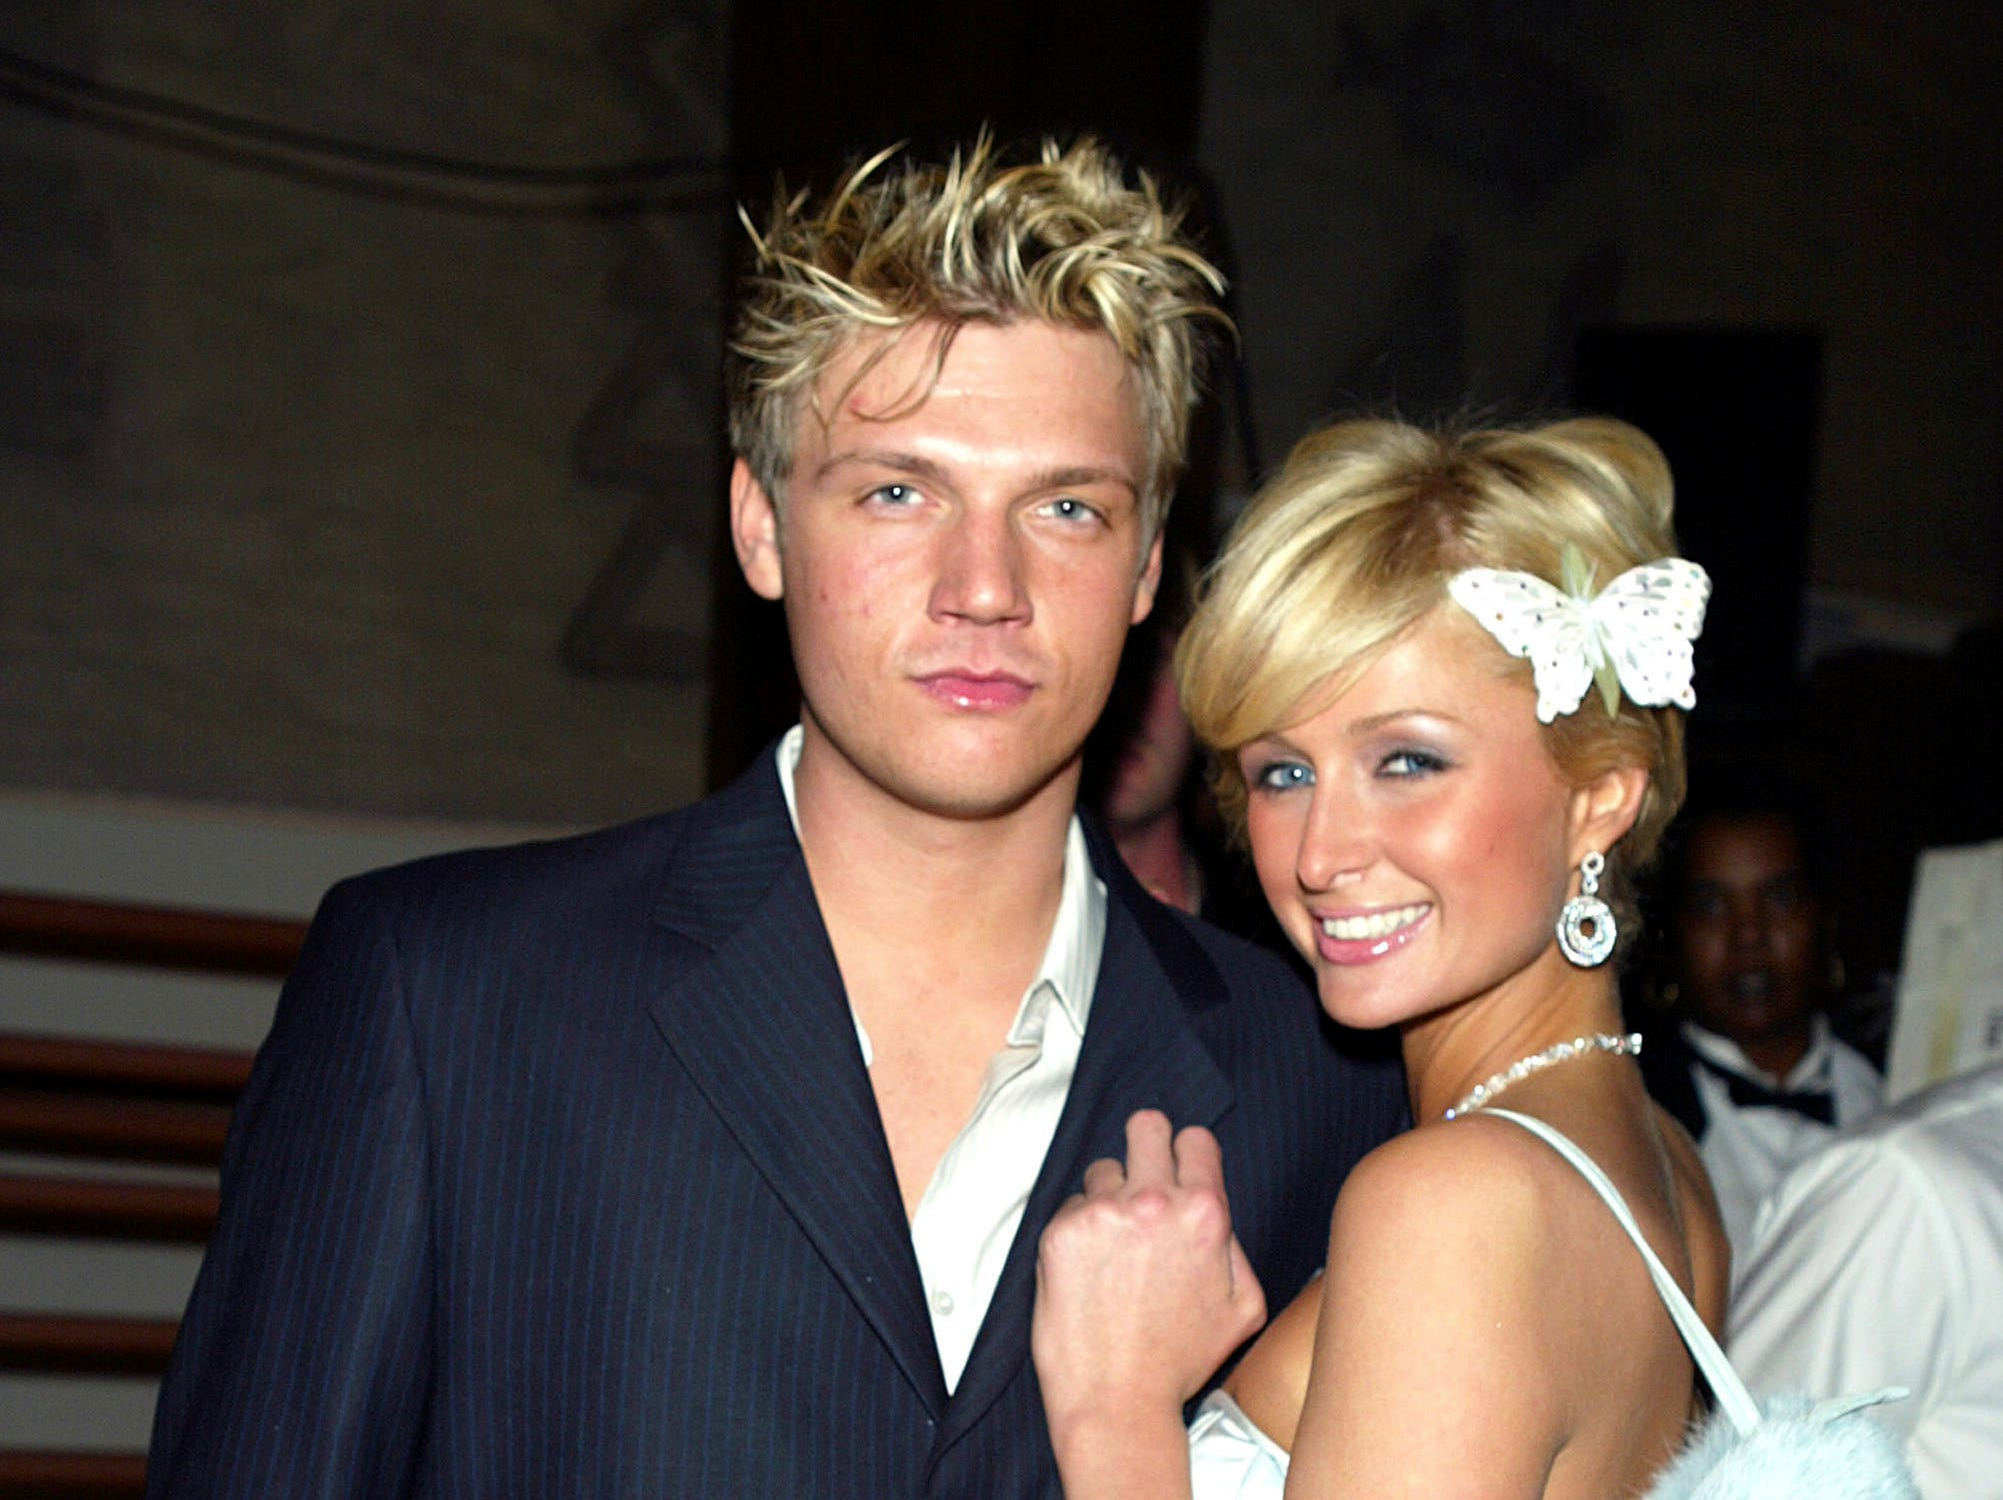 Singer Nick Carter (L) and Paris Hilton arrive at the Miramax Golden Globes After-Party at Trader Vics. --- DATE TAKEN: 1/25/2004  By Kevin Winter   Getty Images    Beverly Hills  CA  UNL    - unlimited reuse   ORG XMIT: ZX13436